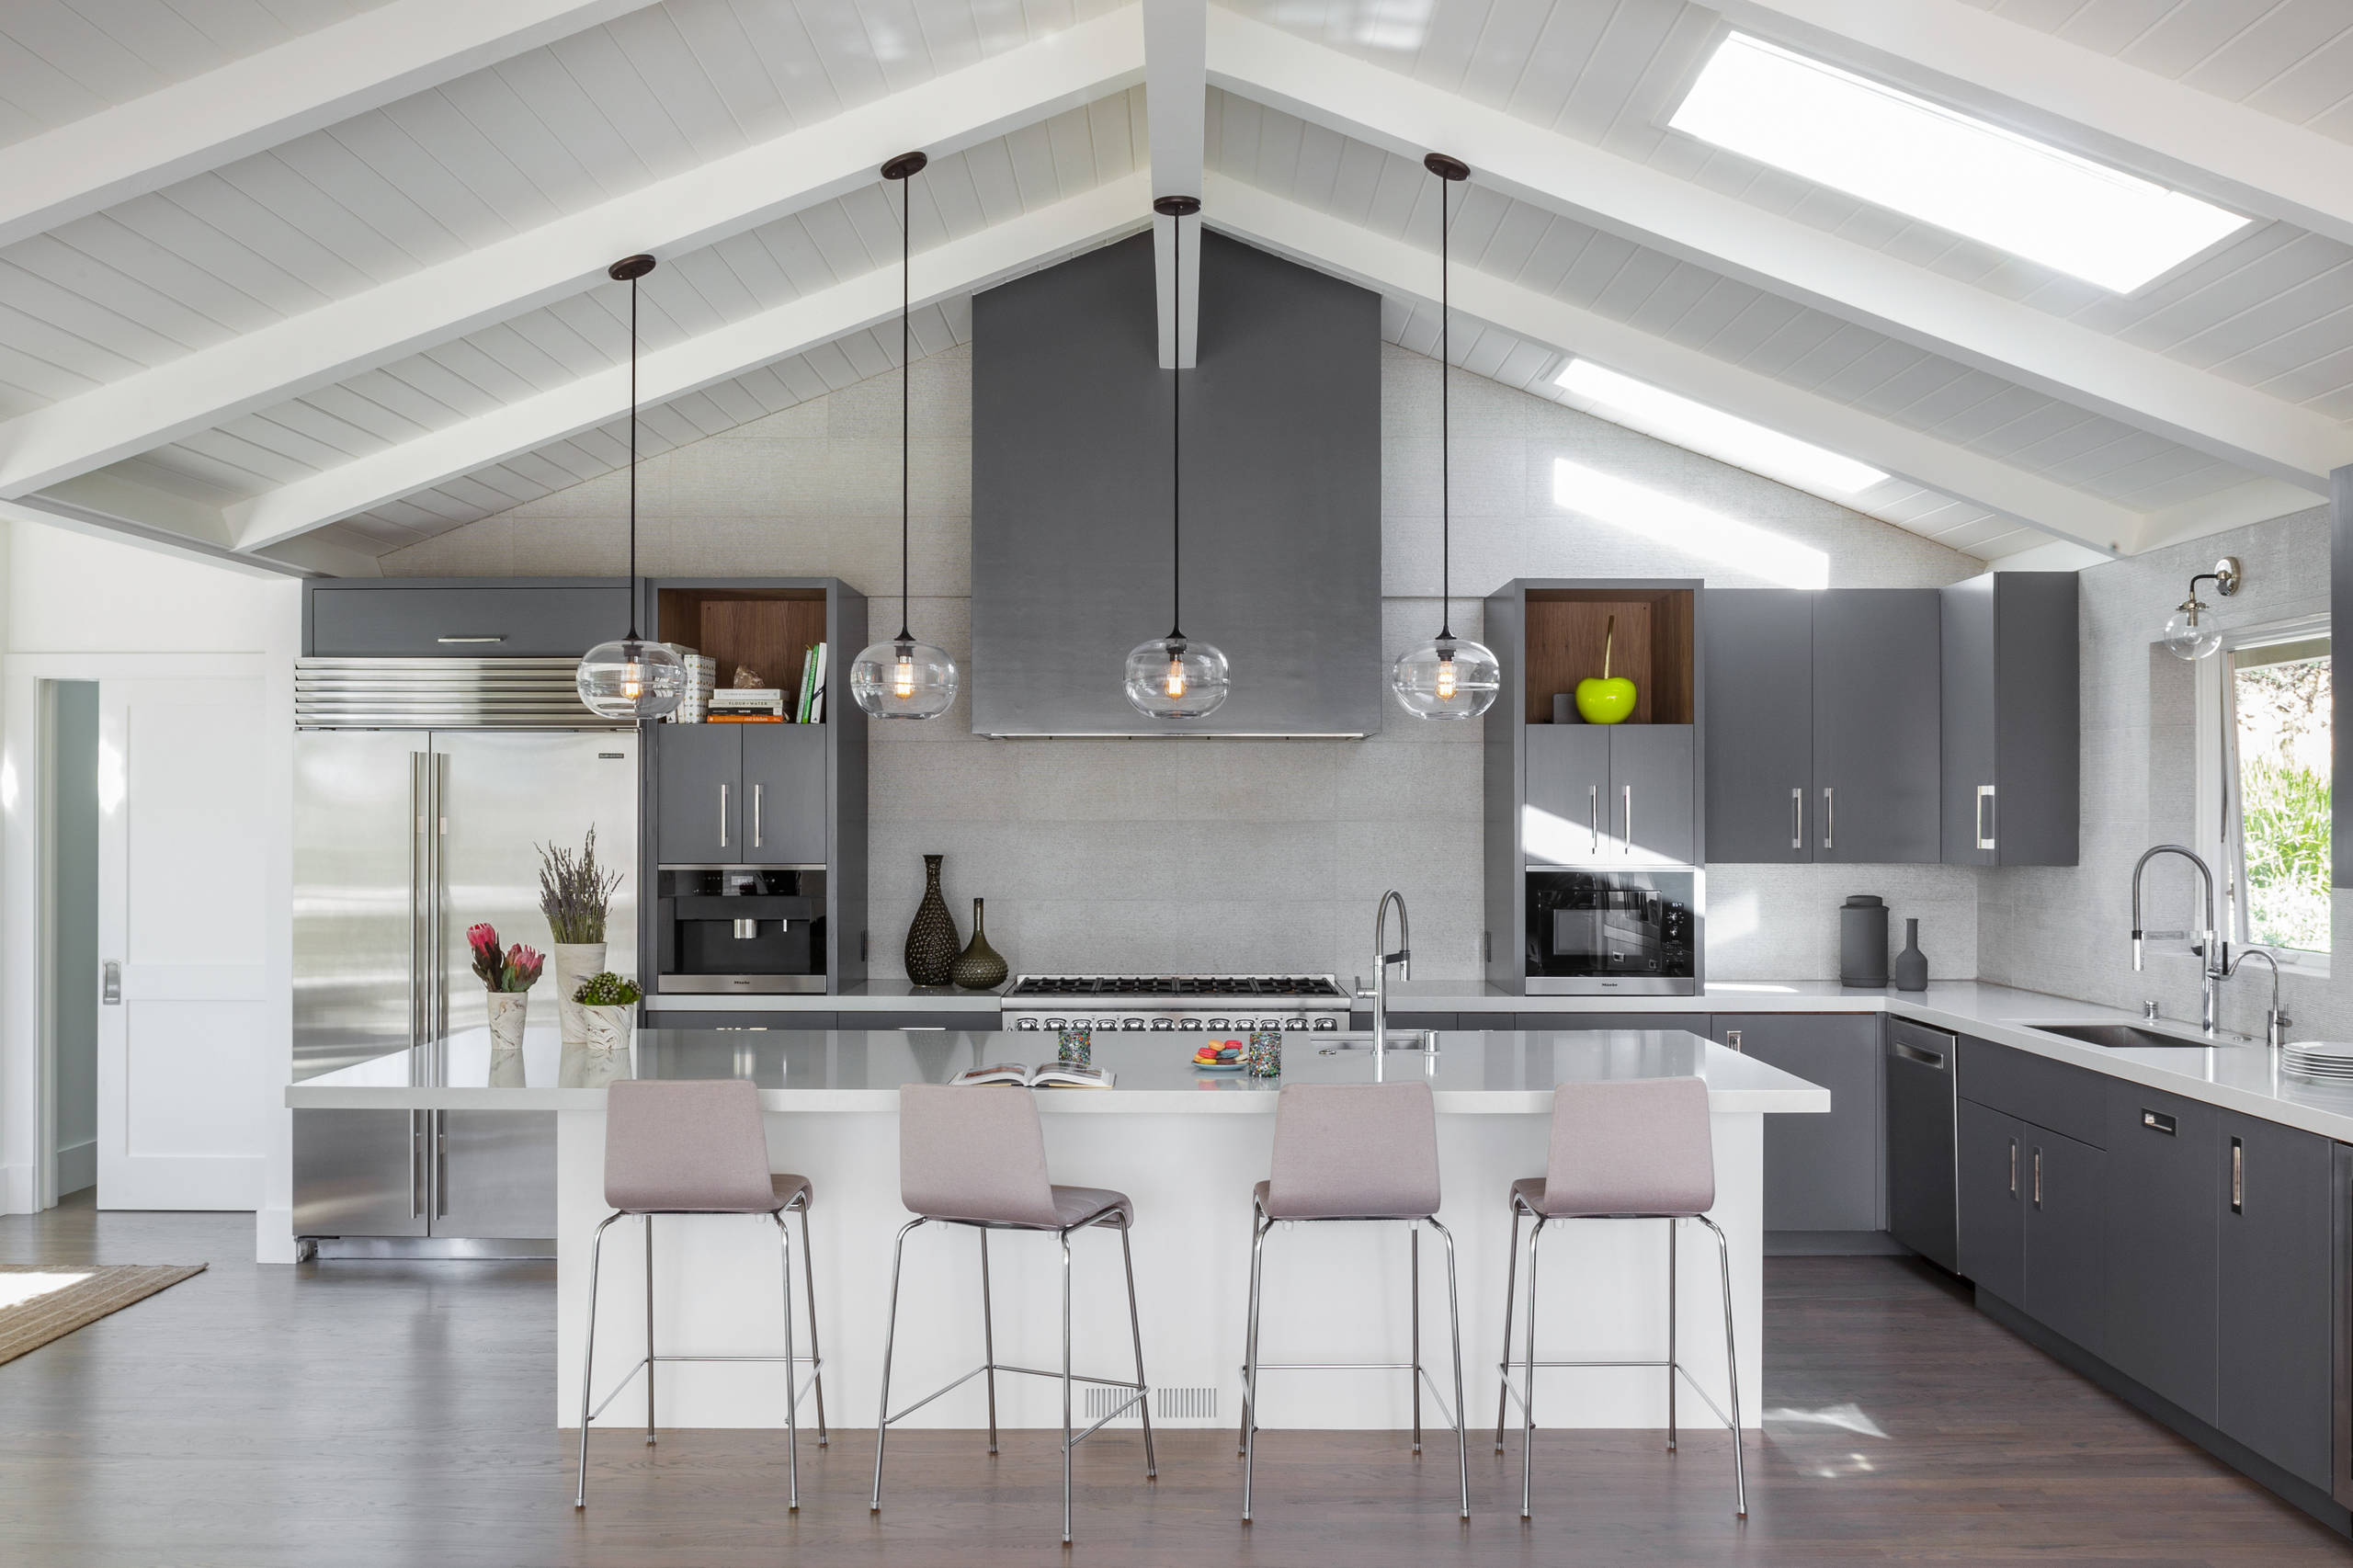 28 Beautiful Vaulted Ceilings Coastal Kitchen Pictures & Ideas